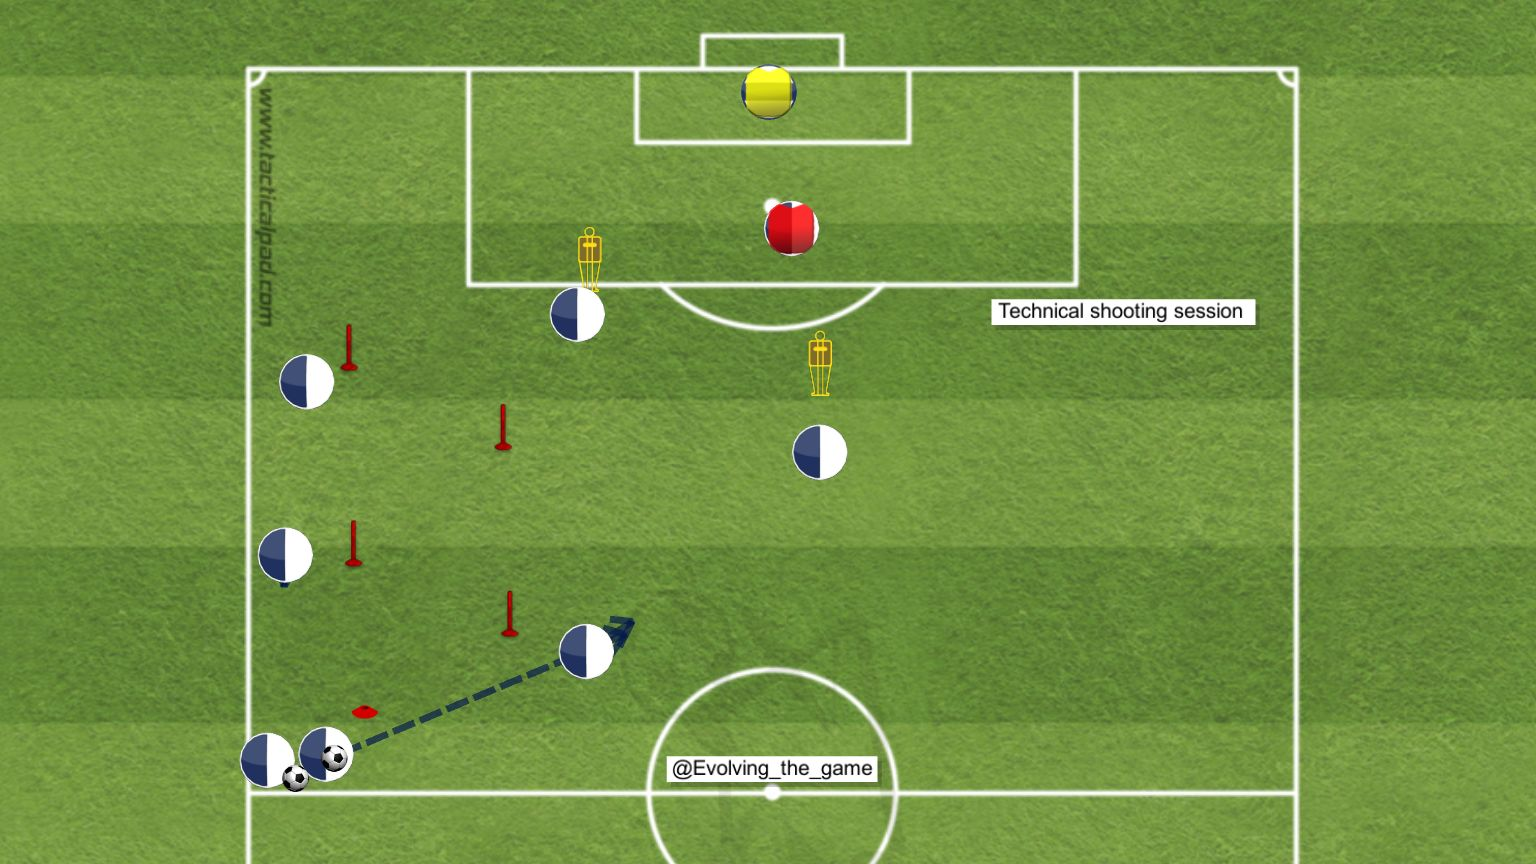 Zig-zag-passing-hold-up-into-1v1-attacking-around-the-area-ANIMATION-2-1